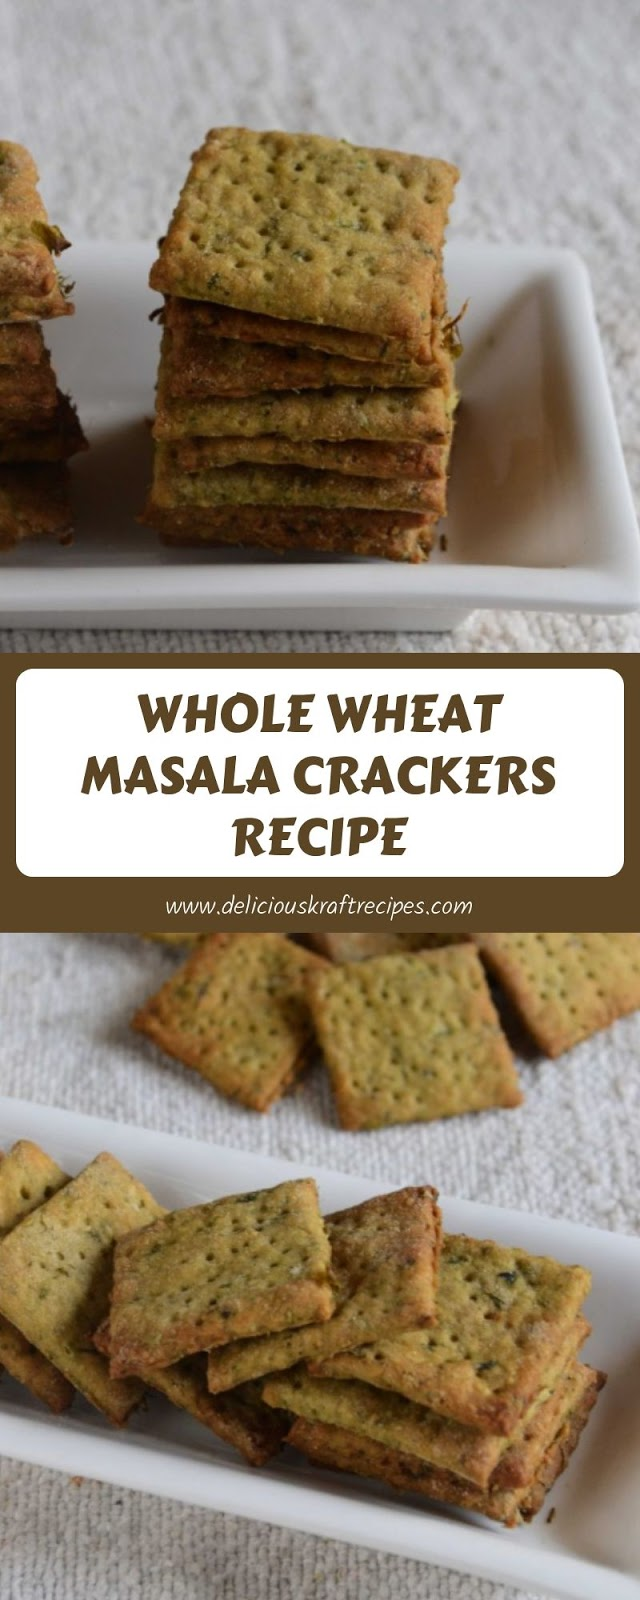 WHOLE WHEAT MASALA CRACKERS RECIPE